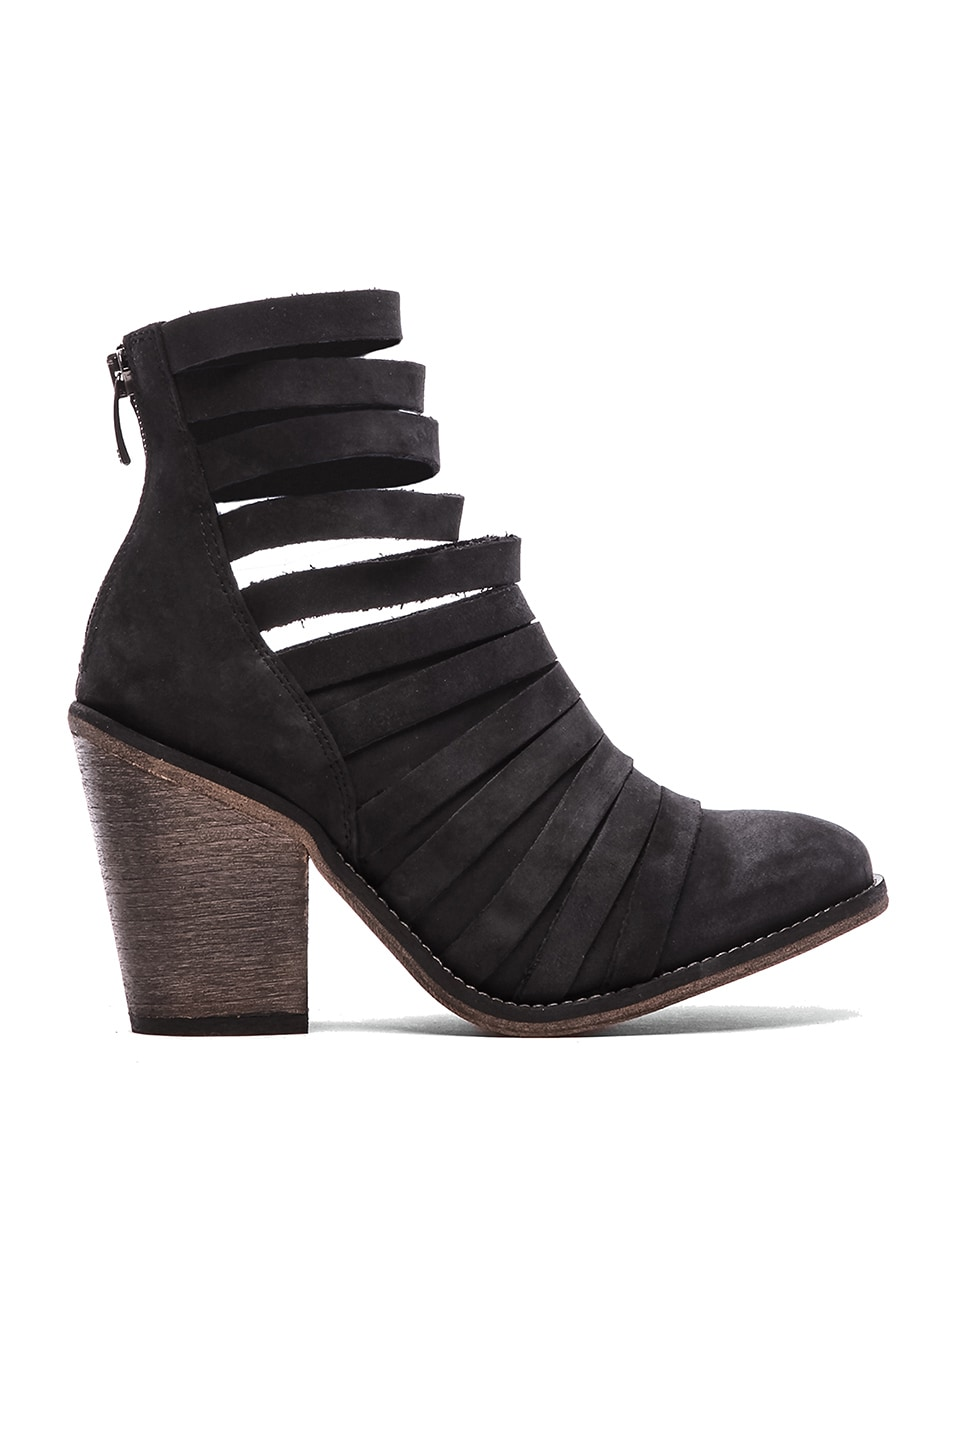 Free People Hybrid Heel Boot in Black